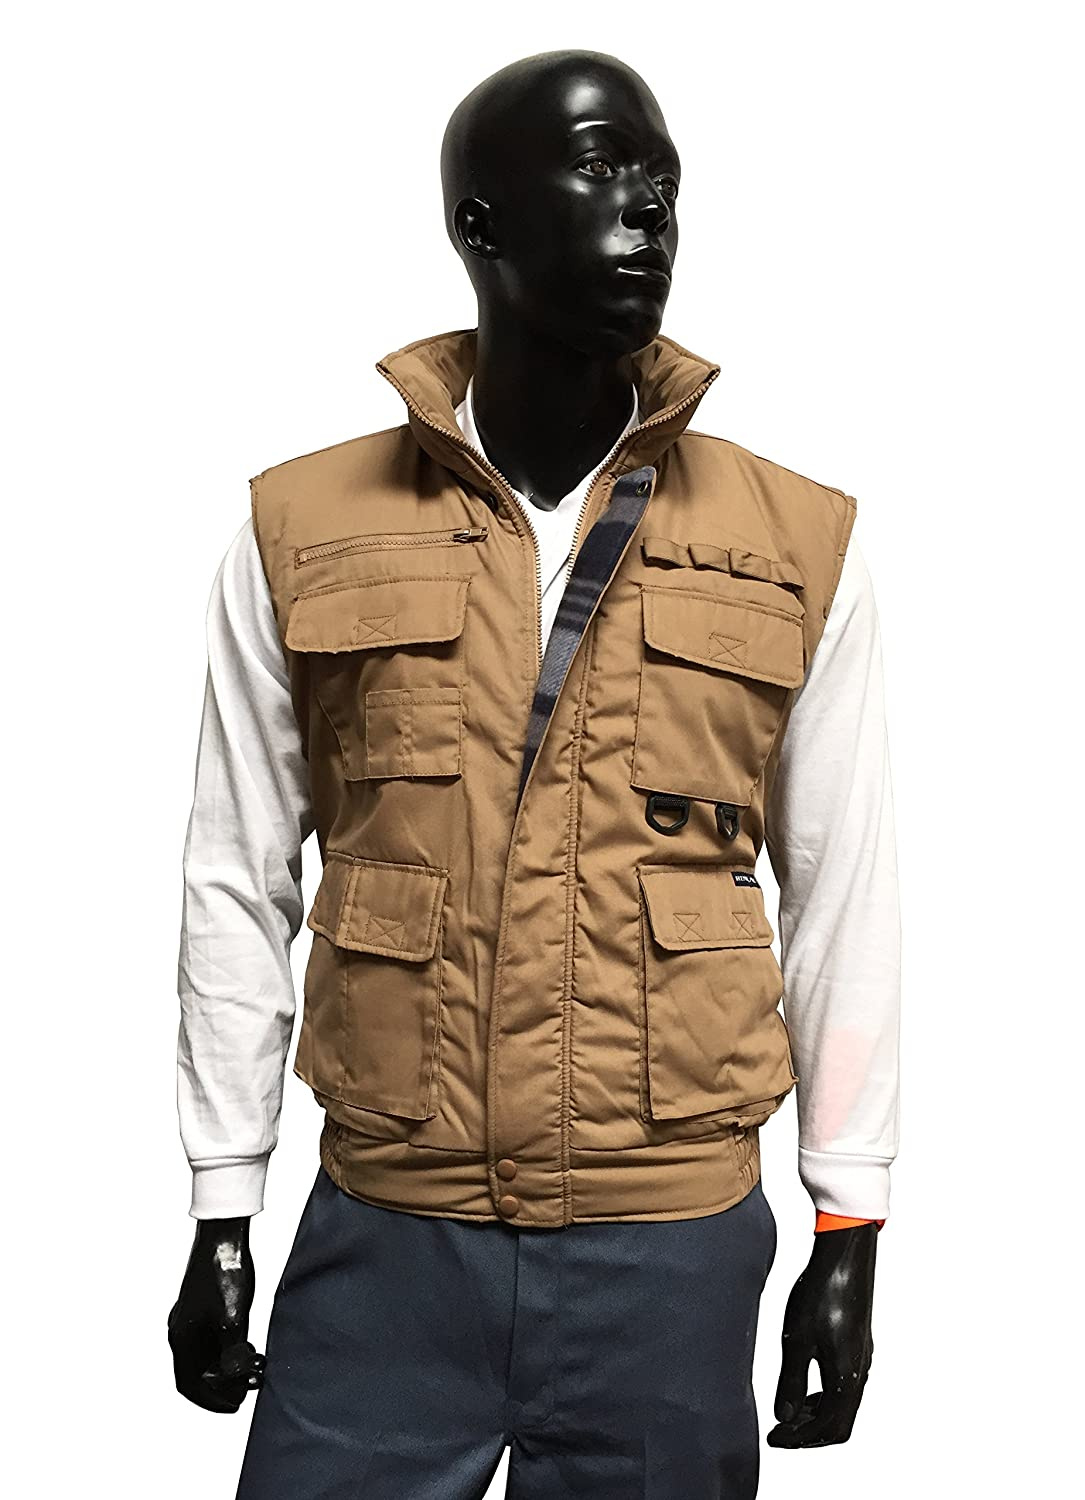 Renegade Men's Vest 1322 Pockets Hunting Padded 100% Authentic